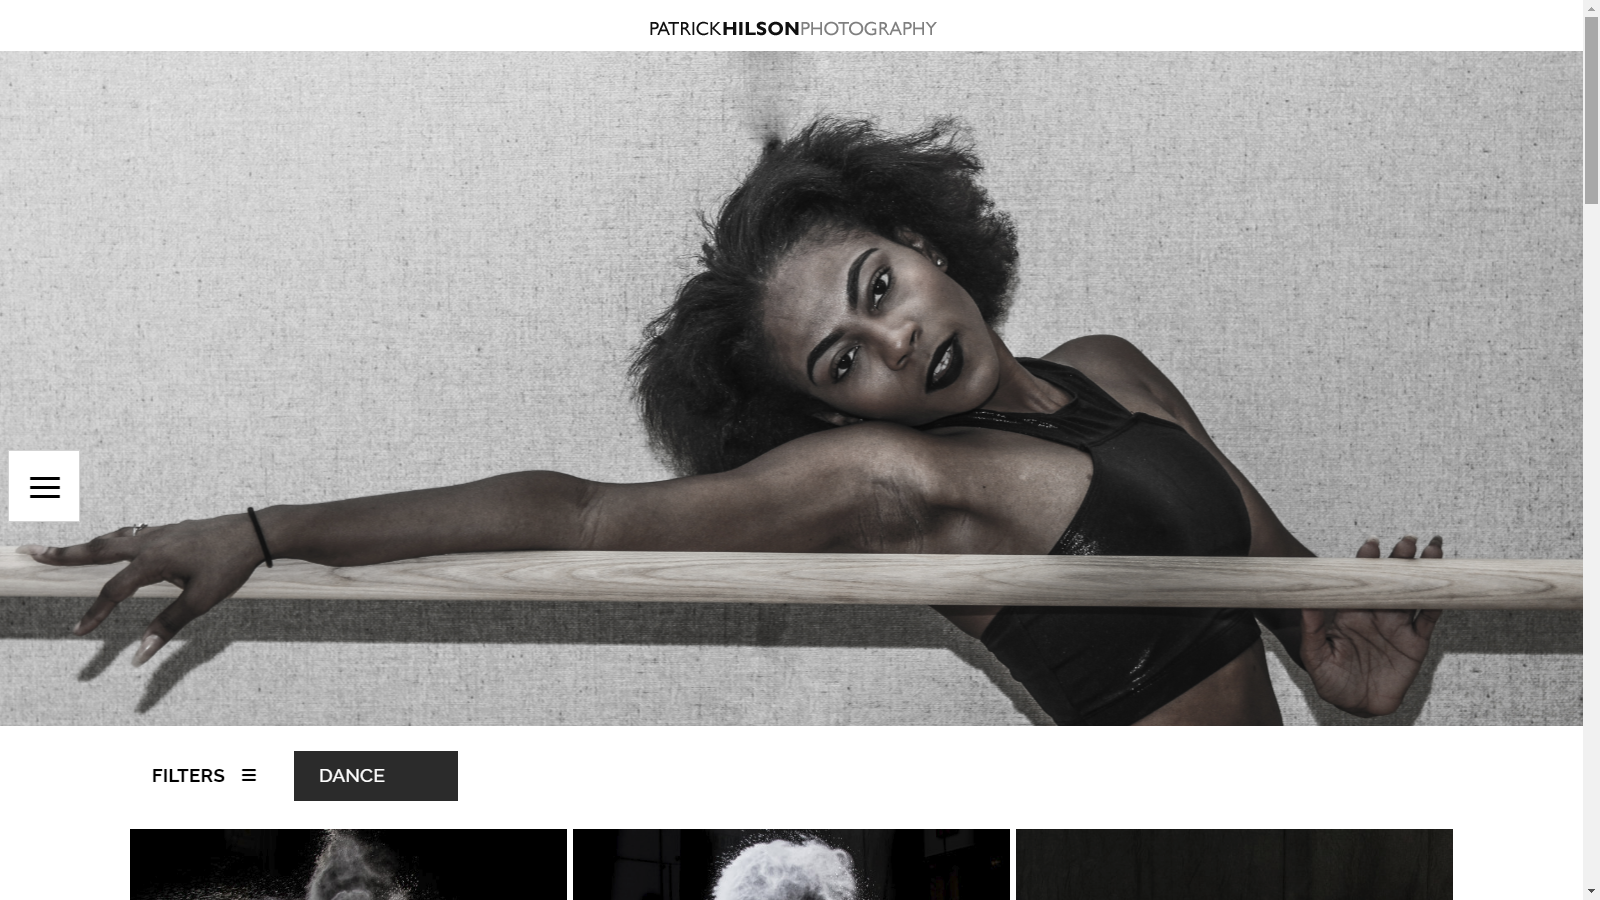 Patrick Hilson Photography Website